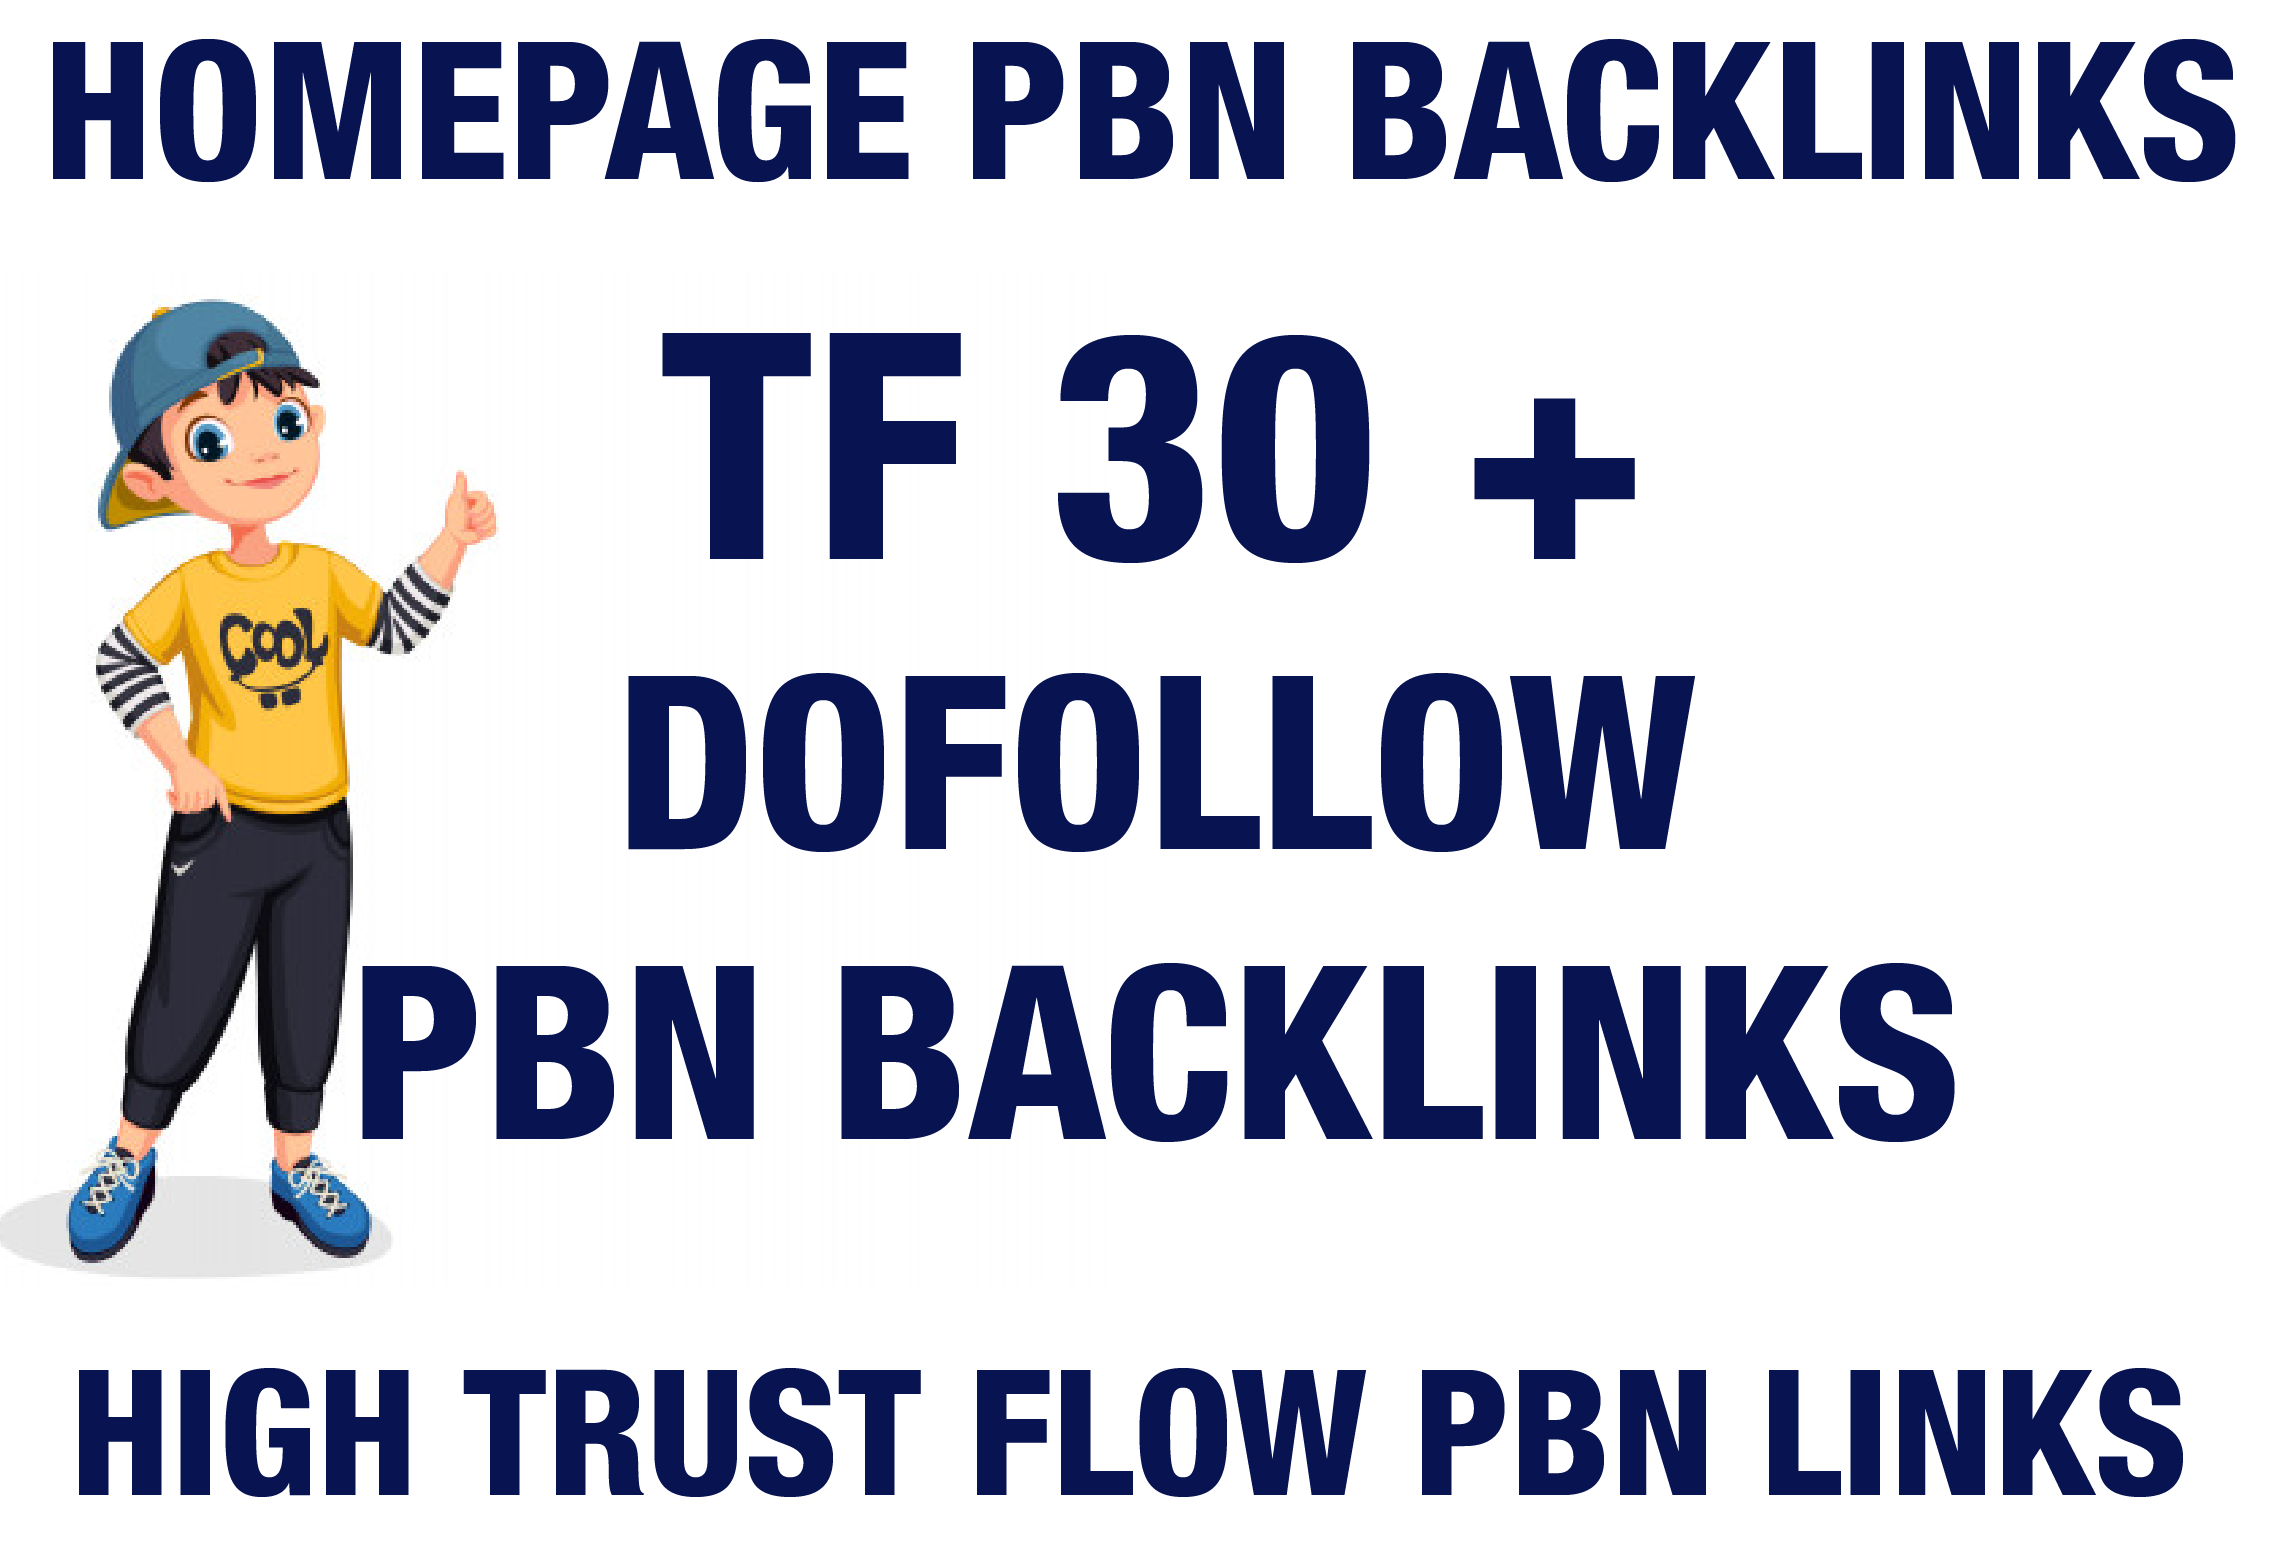 I will Provide 30 Homepage PBN TF 30 Plus PBN Backlinks